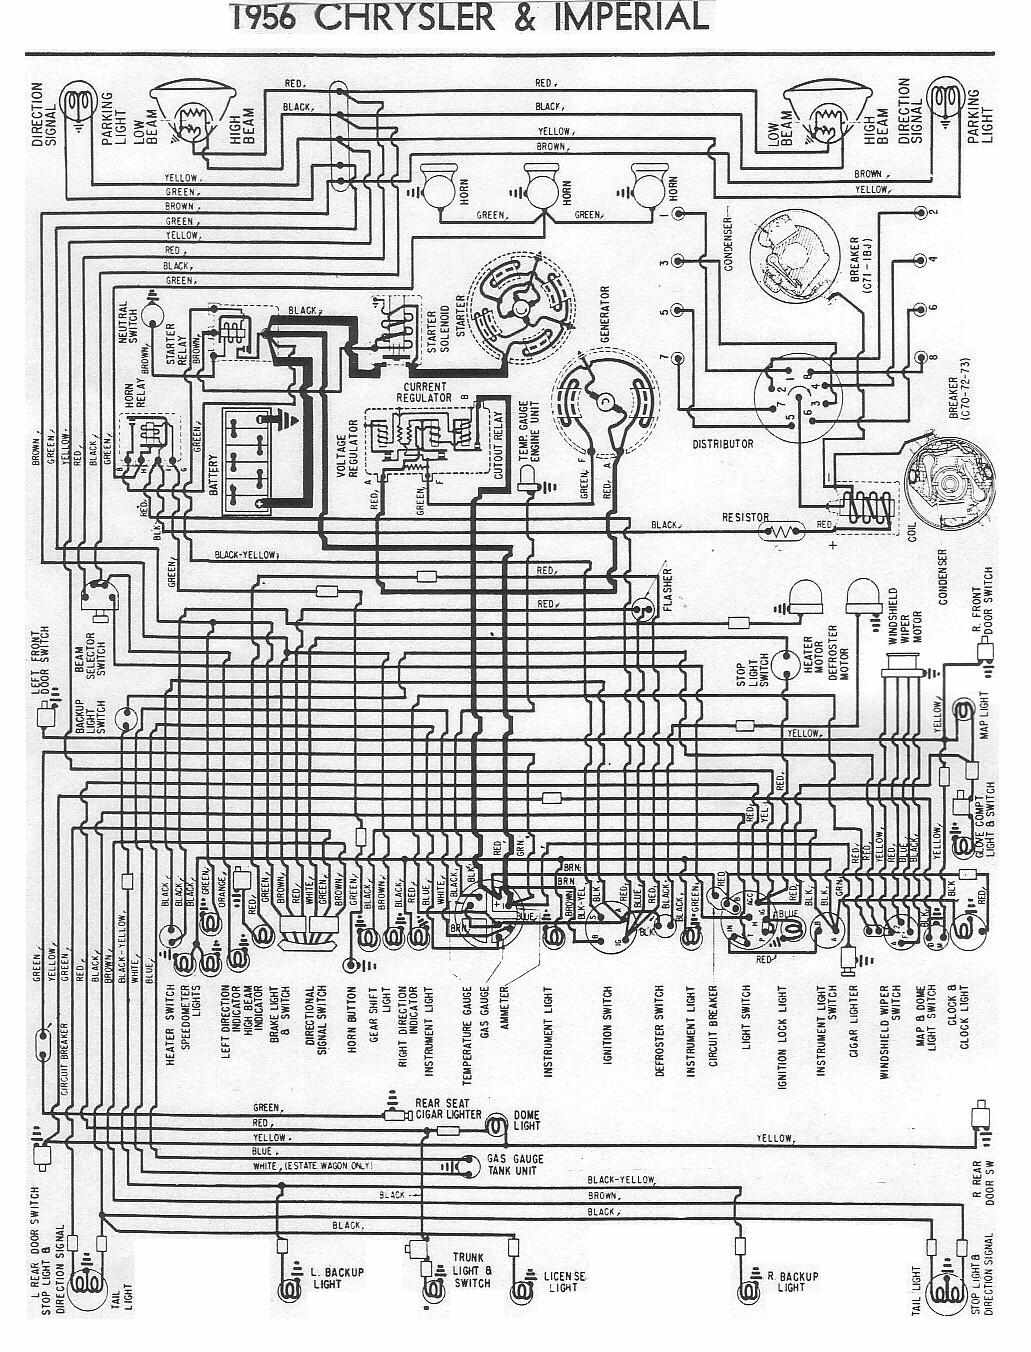 small resolution of wiring diagram of 1956 chrysler and imperial circuit wiring wiring 1956 chrysler wiring diagram